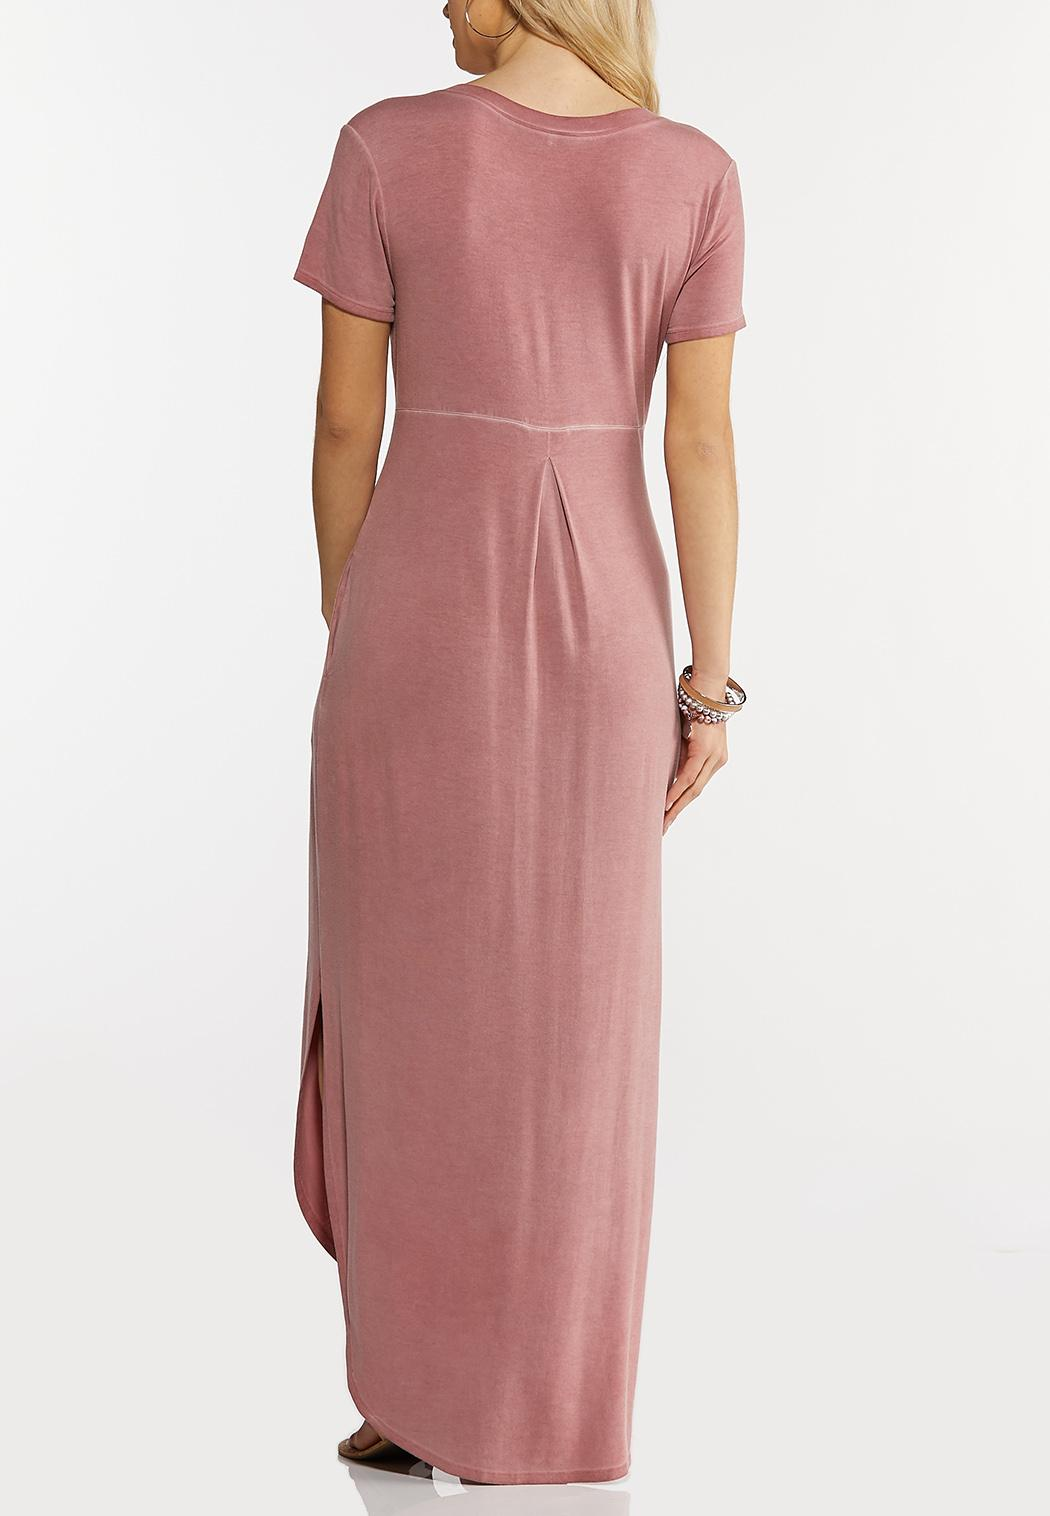 Rose Knotted Maxi Dress (Item #44264501)